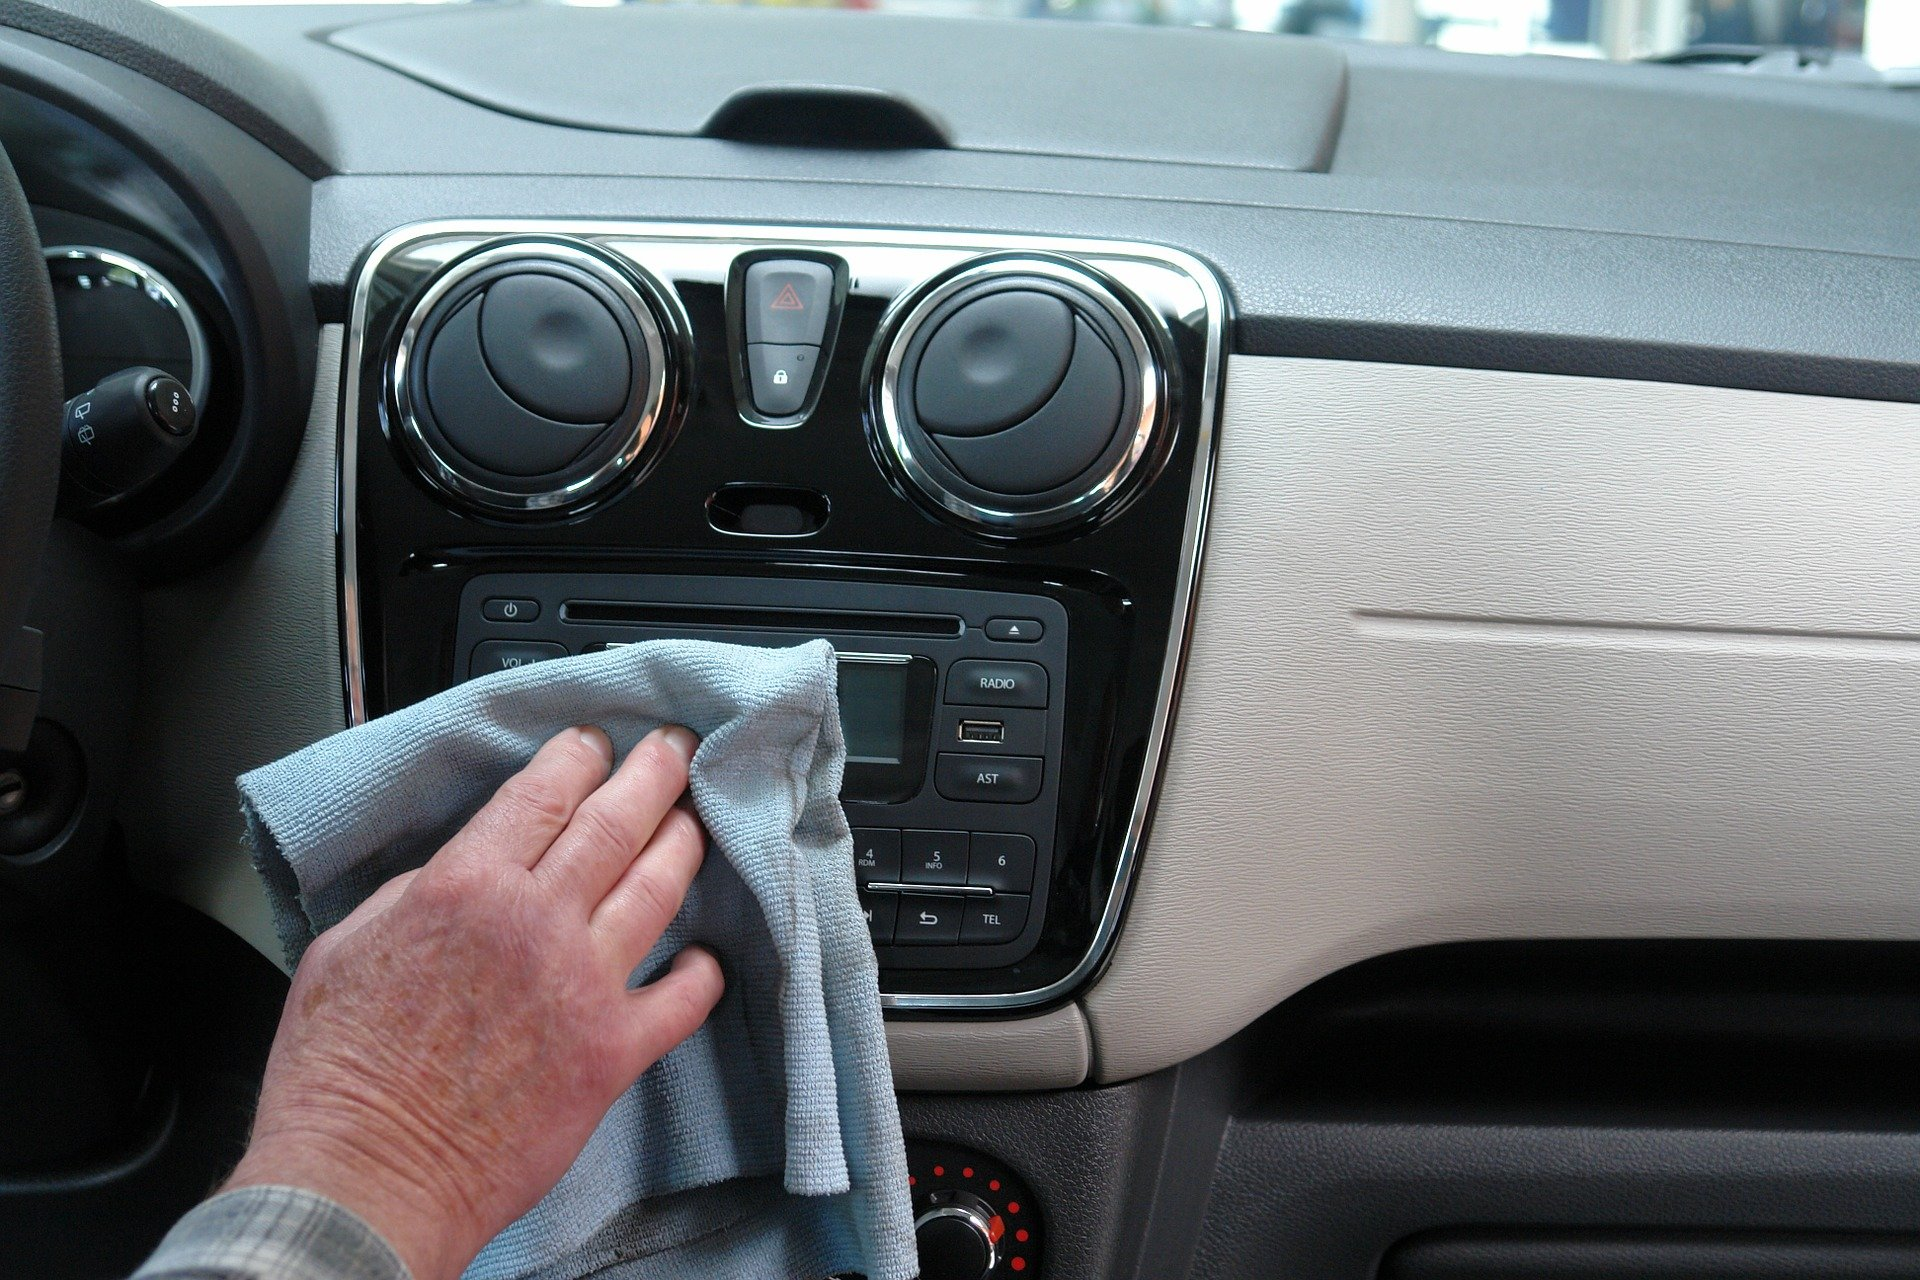 Person cleaning their car inside